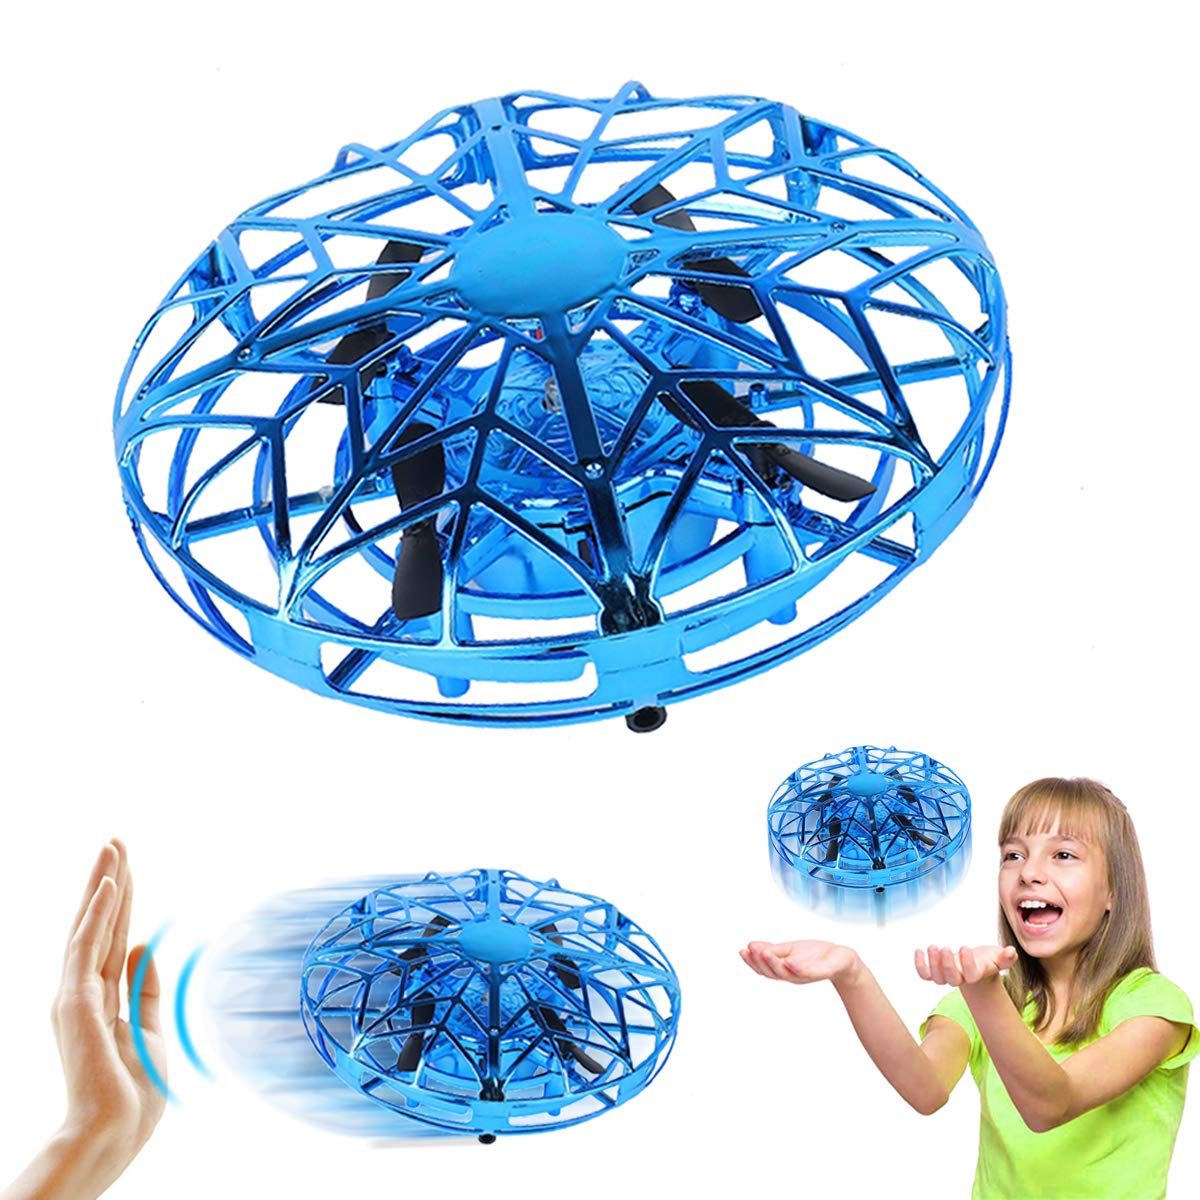 Joyfun Toys for 3-10 Year Old Boys Girls Flying Ball Mini Drone for Kids Air Magic Hogs Hand Controlled Flying Toys UFO Remote Control Helicopter Birthday Gifts Blue by Joyfun (Image #1)